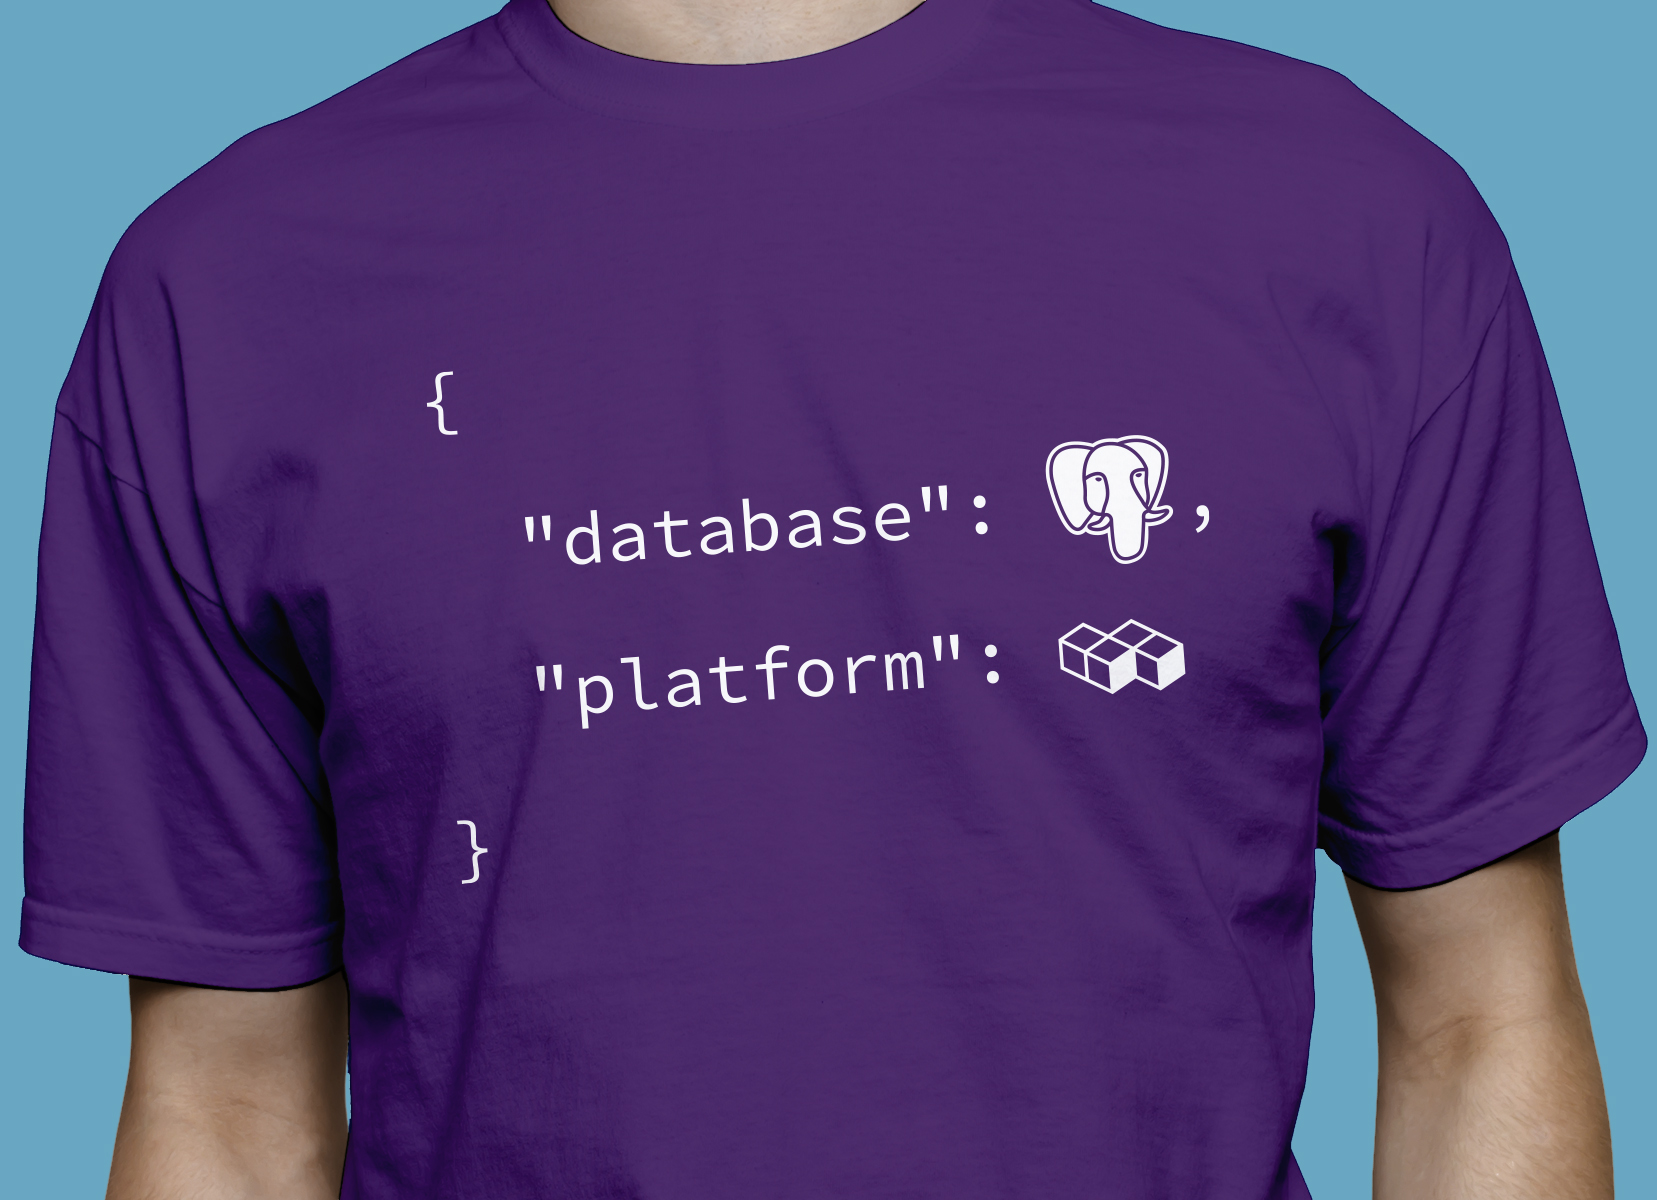 Try MongoDB with Compose and Get a Limited Edition T-Shirt